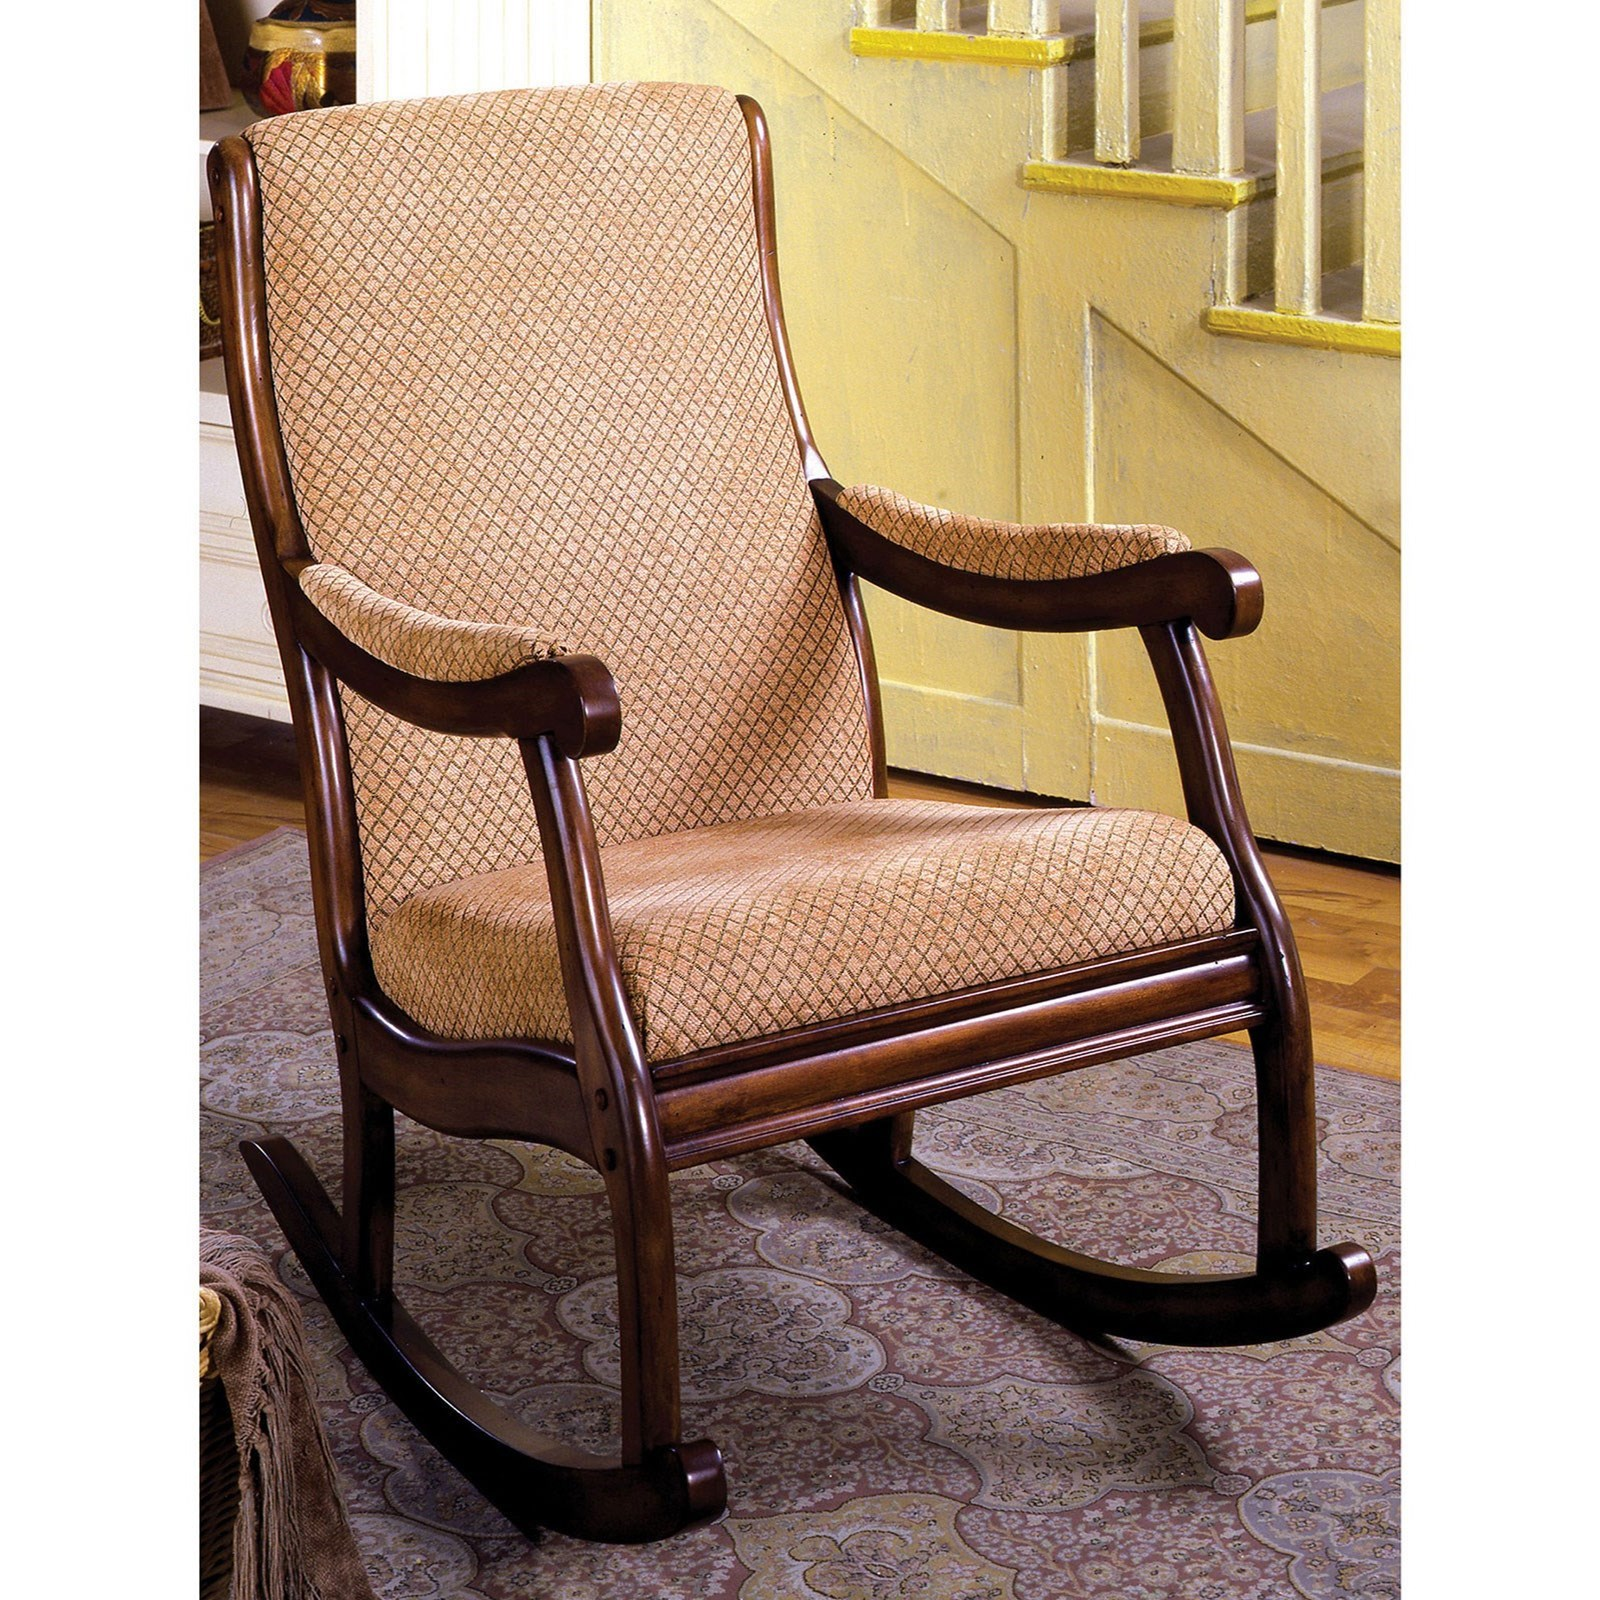 Liverpool Rocking Chair at Household Furniture